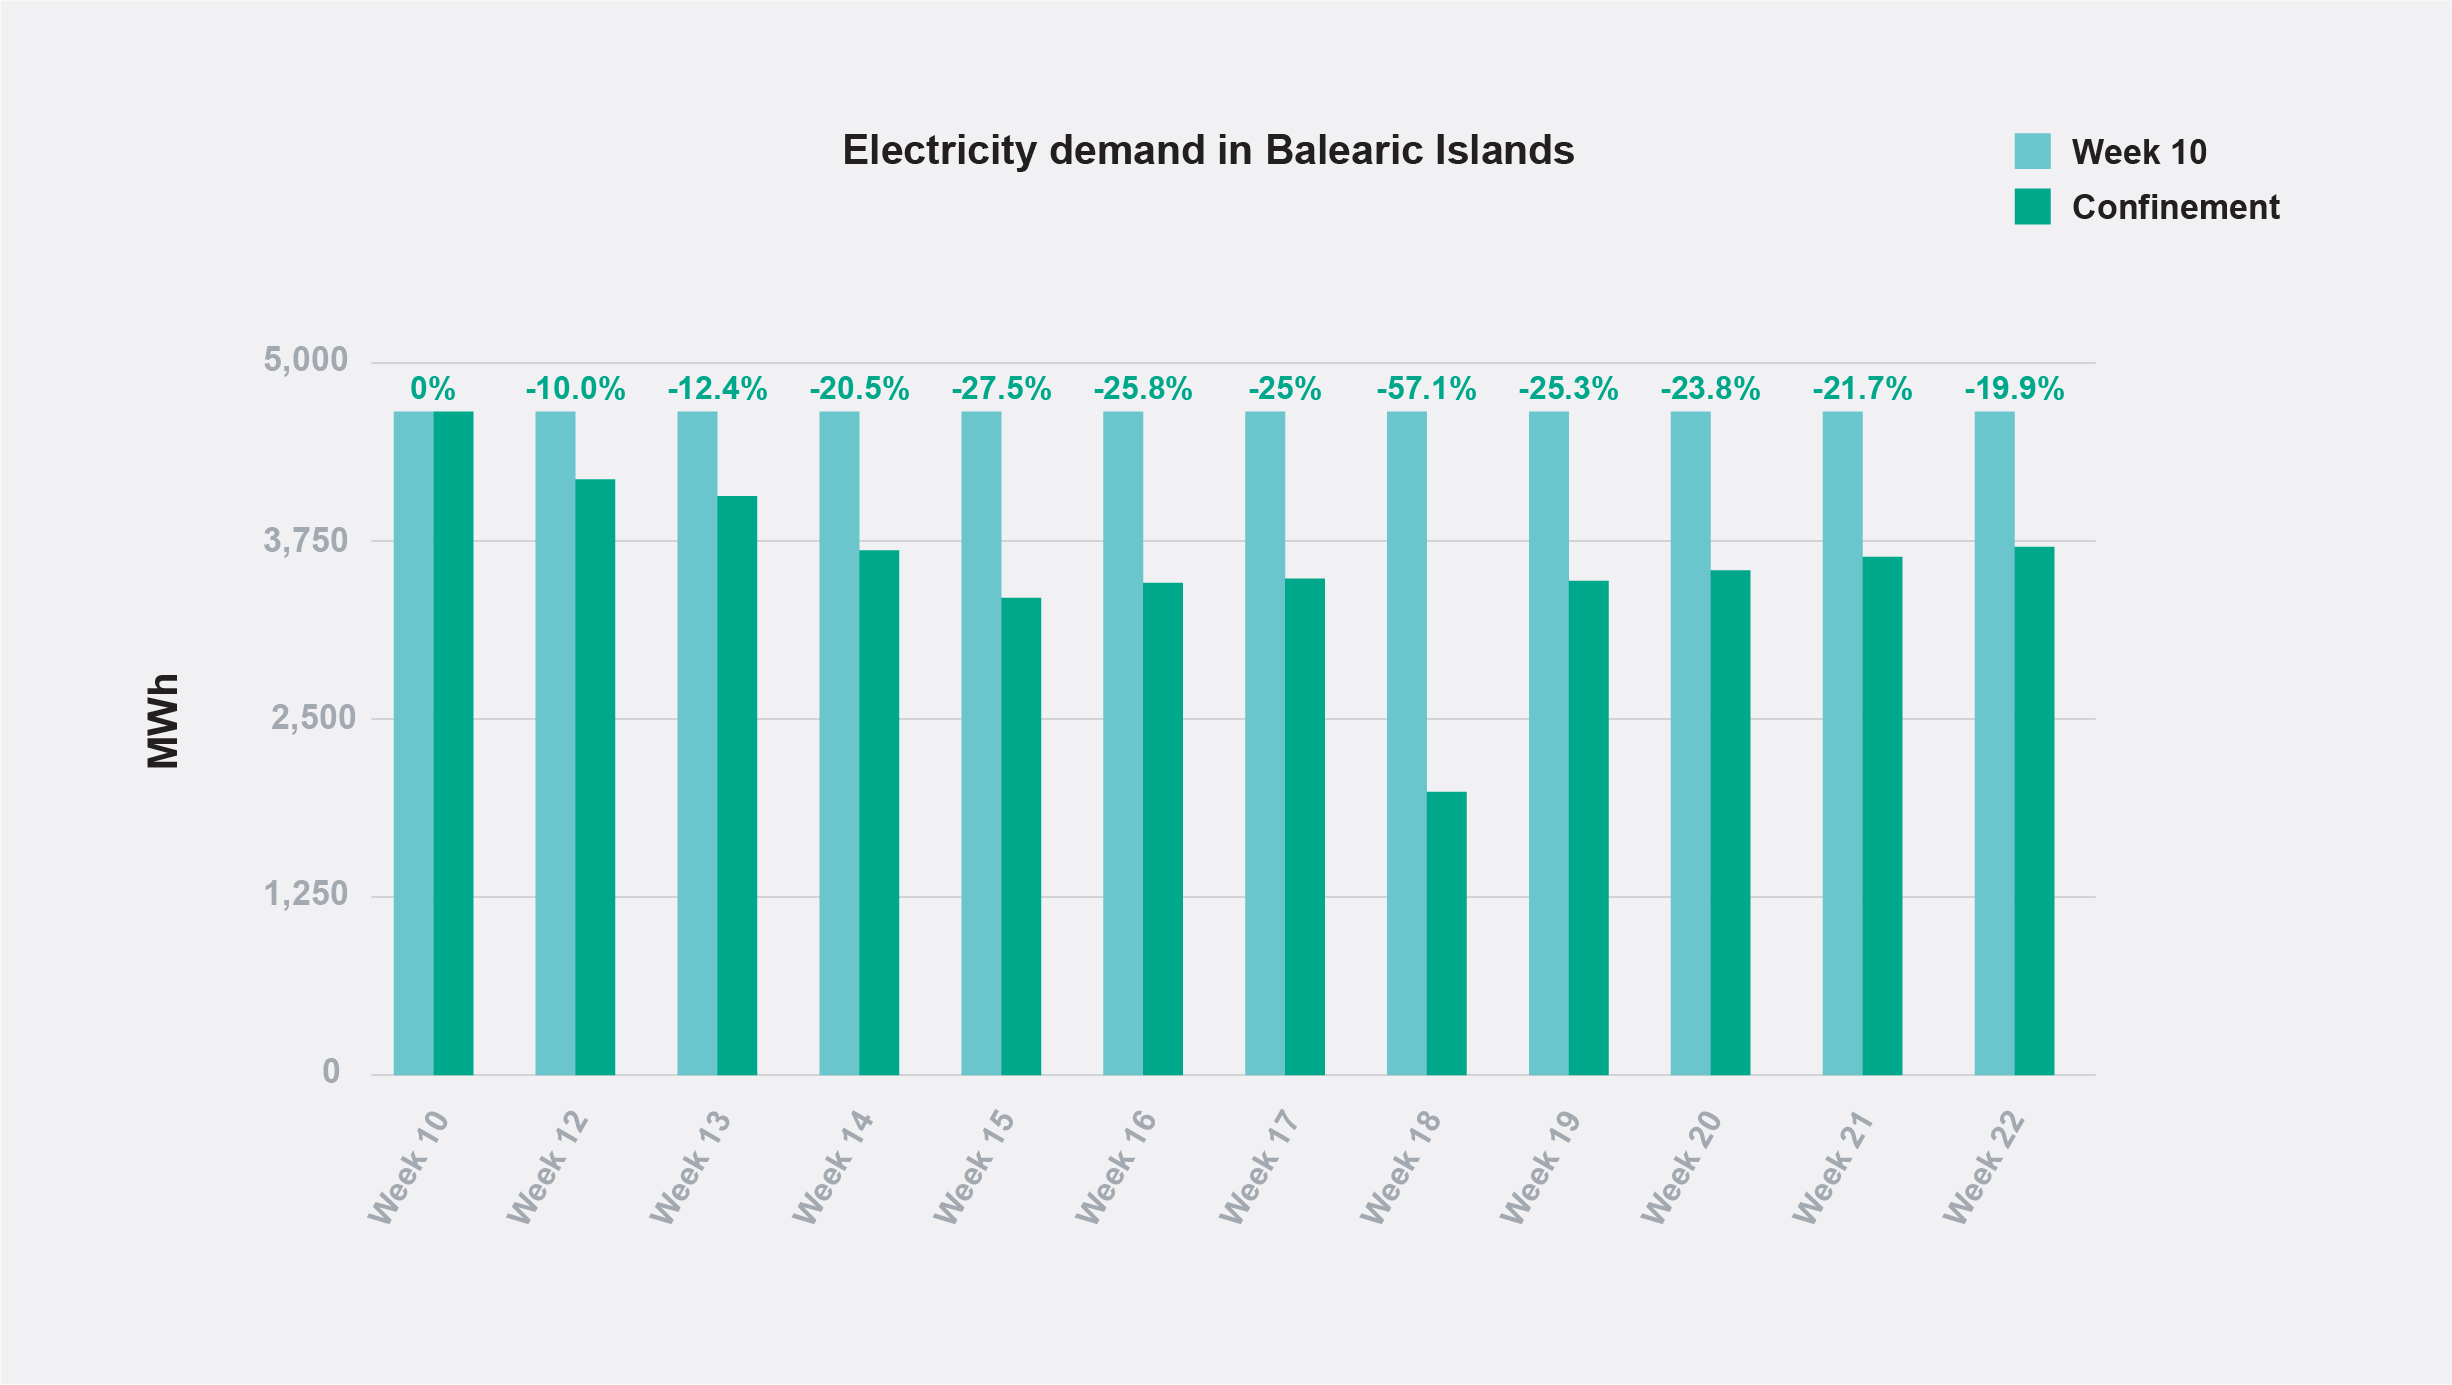 Energy demand in the Balearic Islands during home confinement.